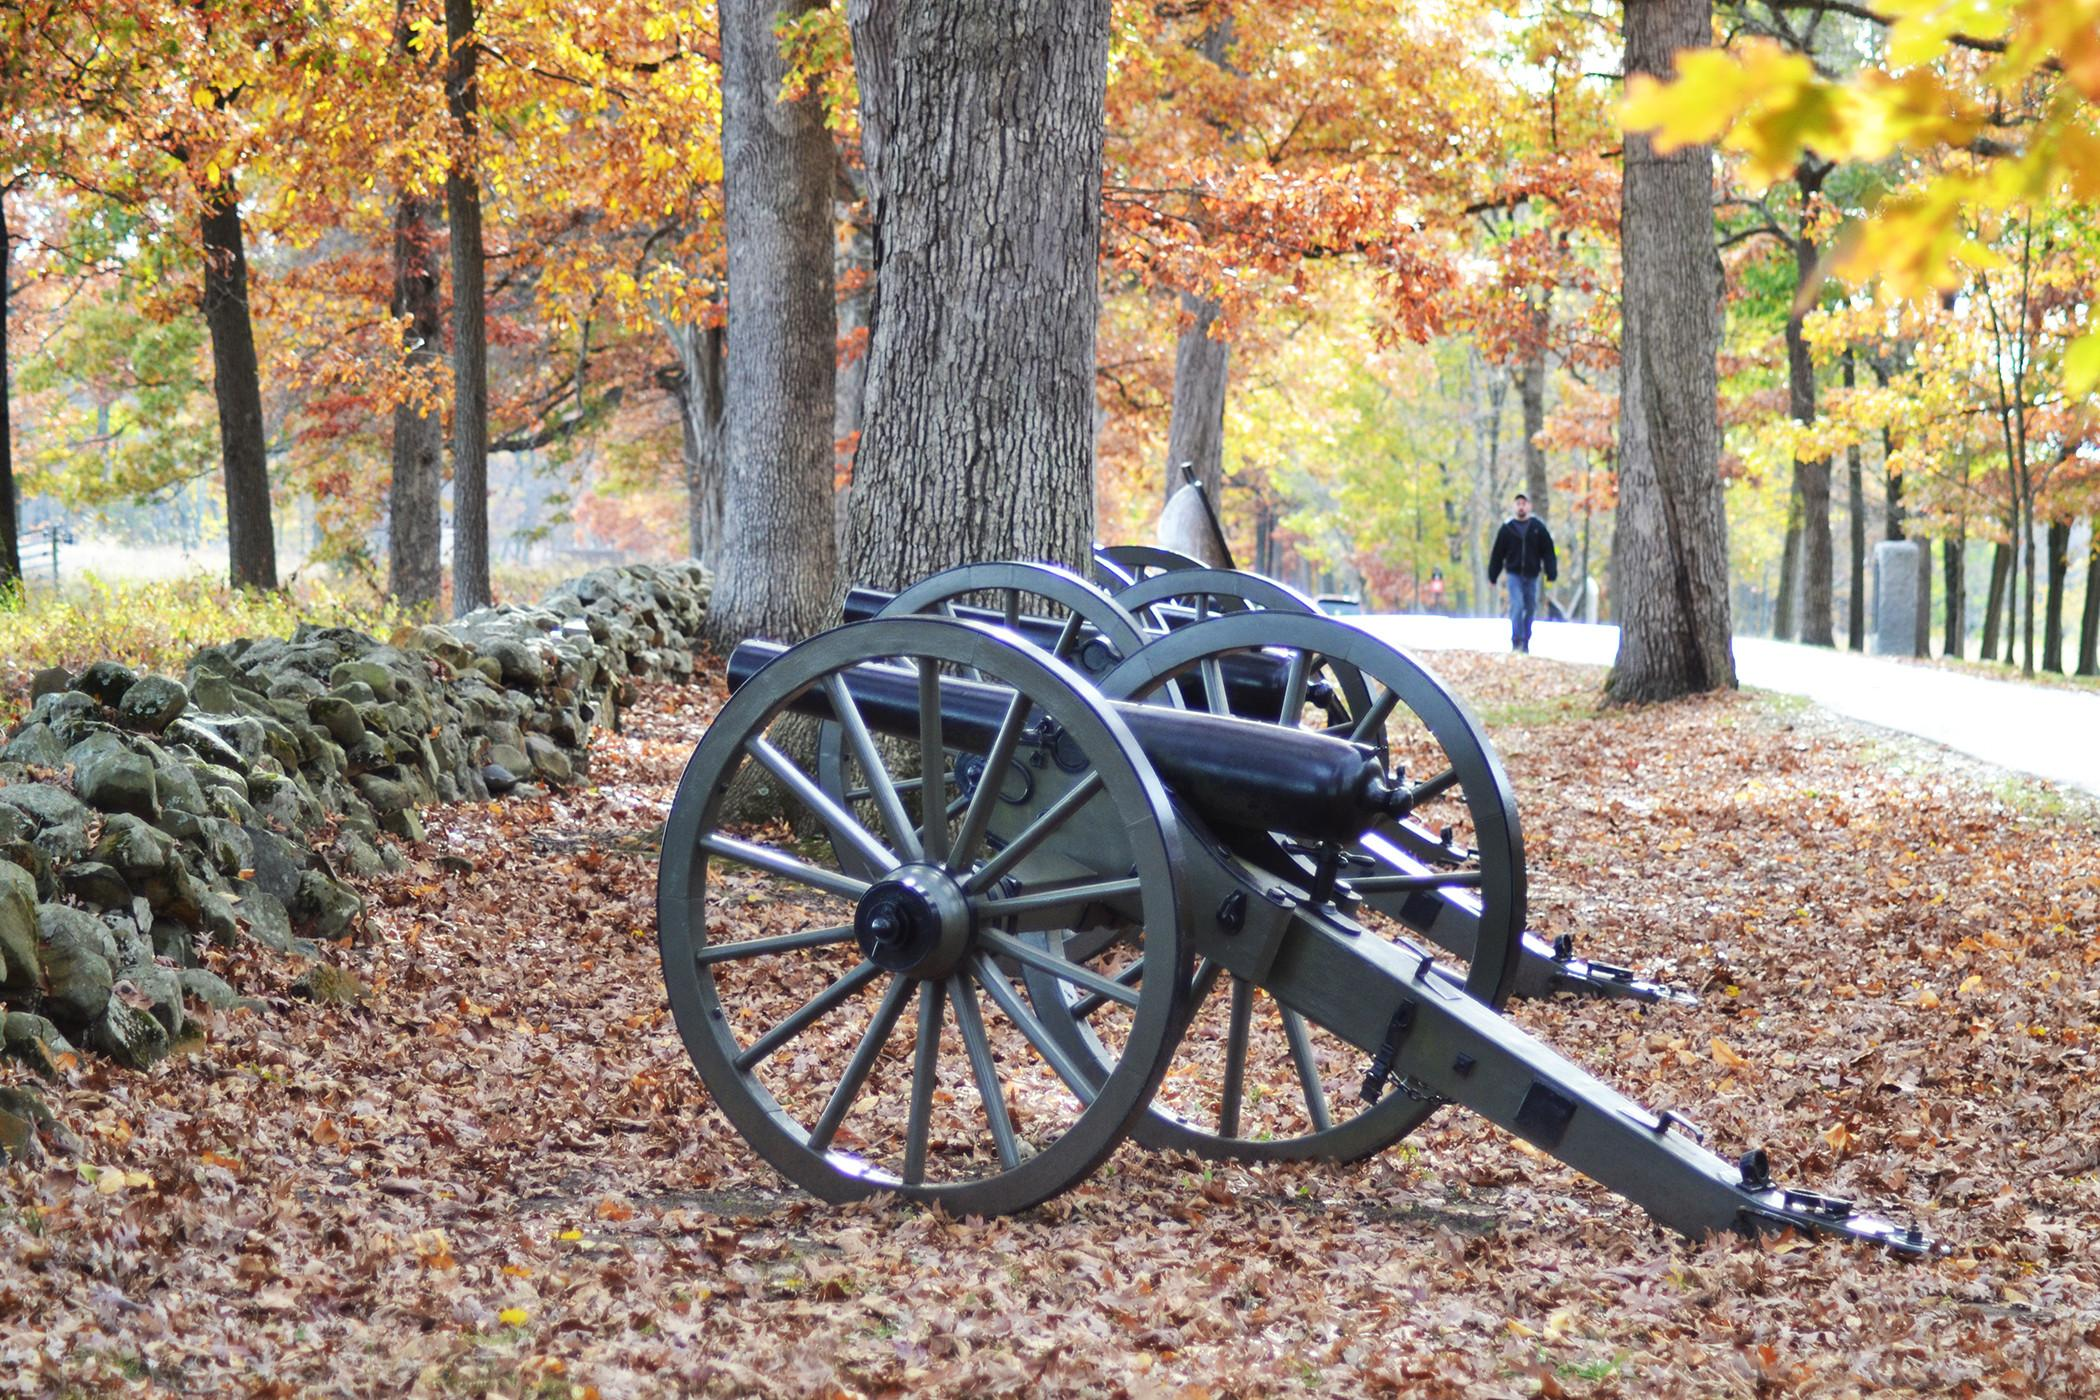 One of the more than 400 cannon on display at Gettysburg National Military Park. (Photo courtesy of Destination Gettysburg)